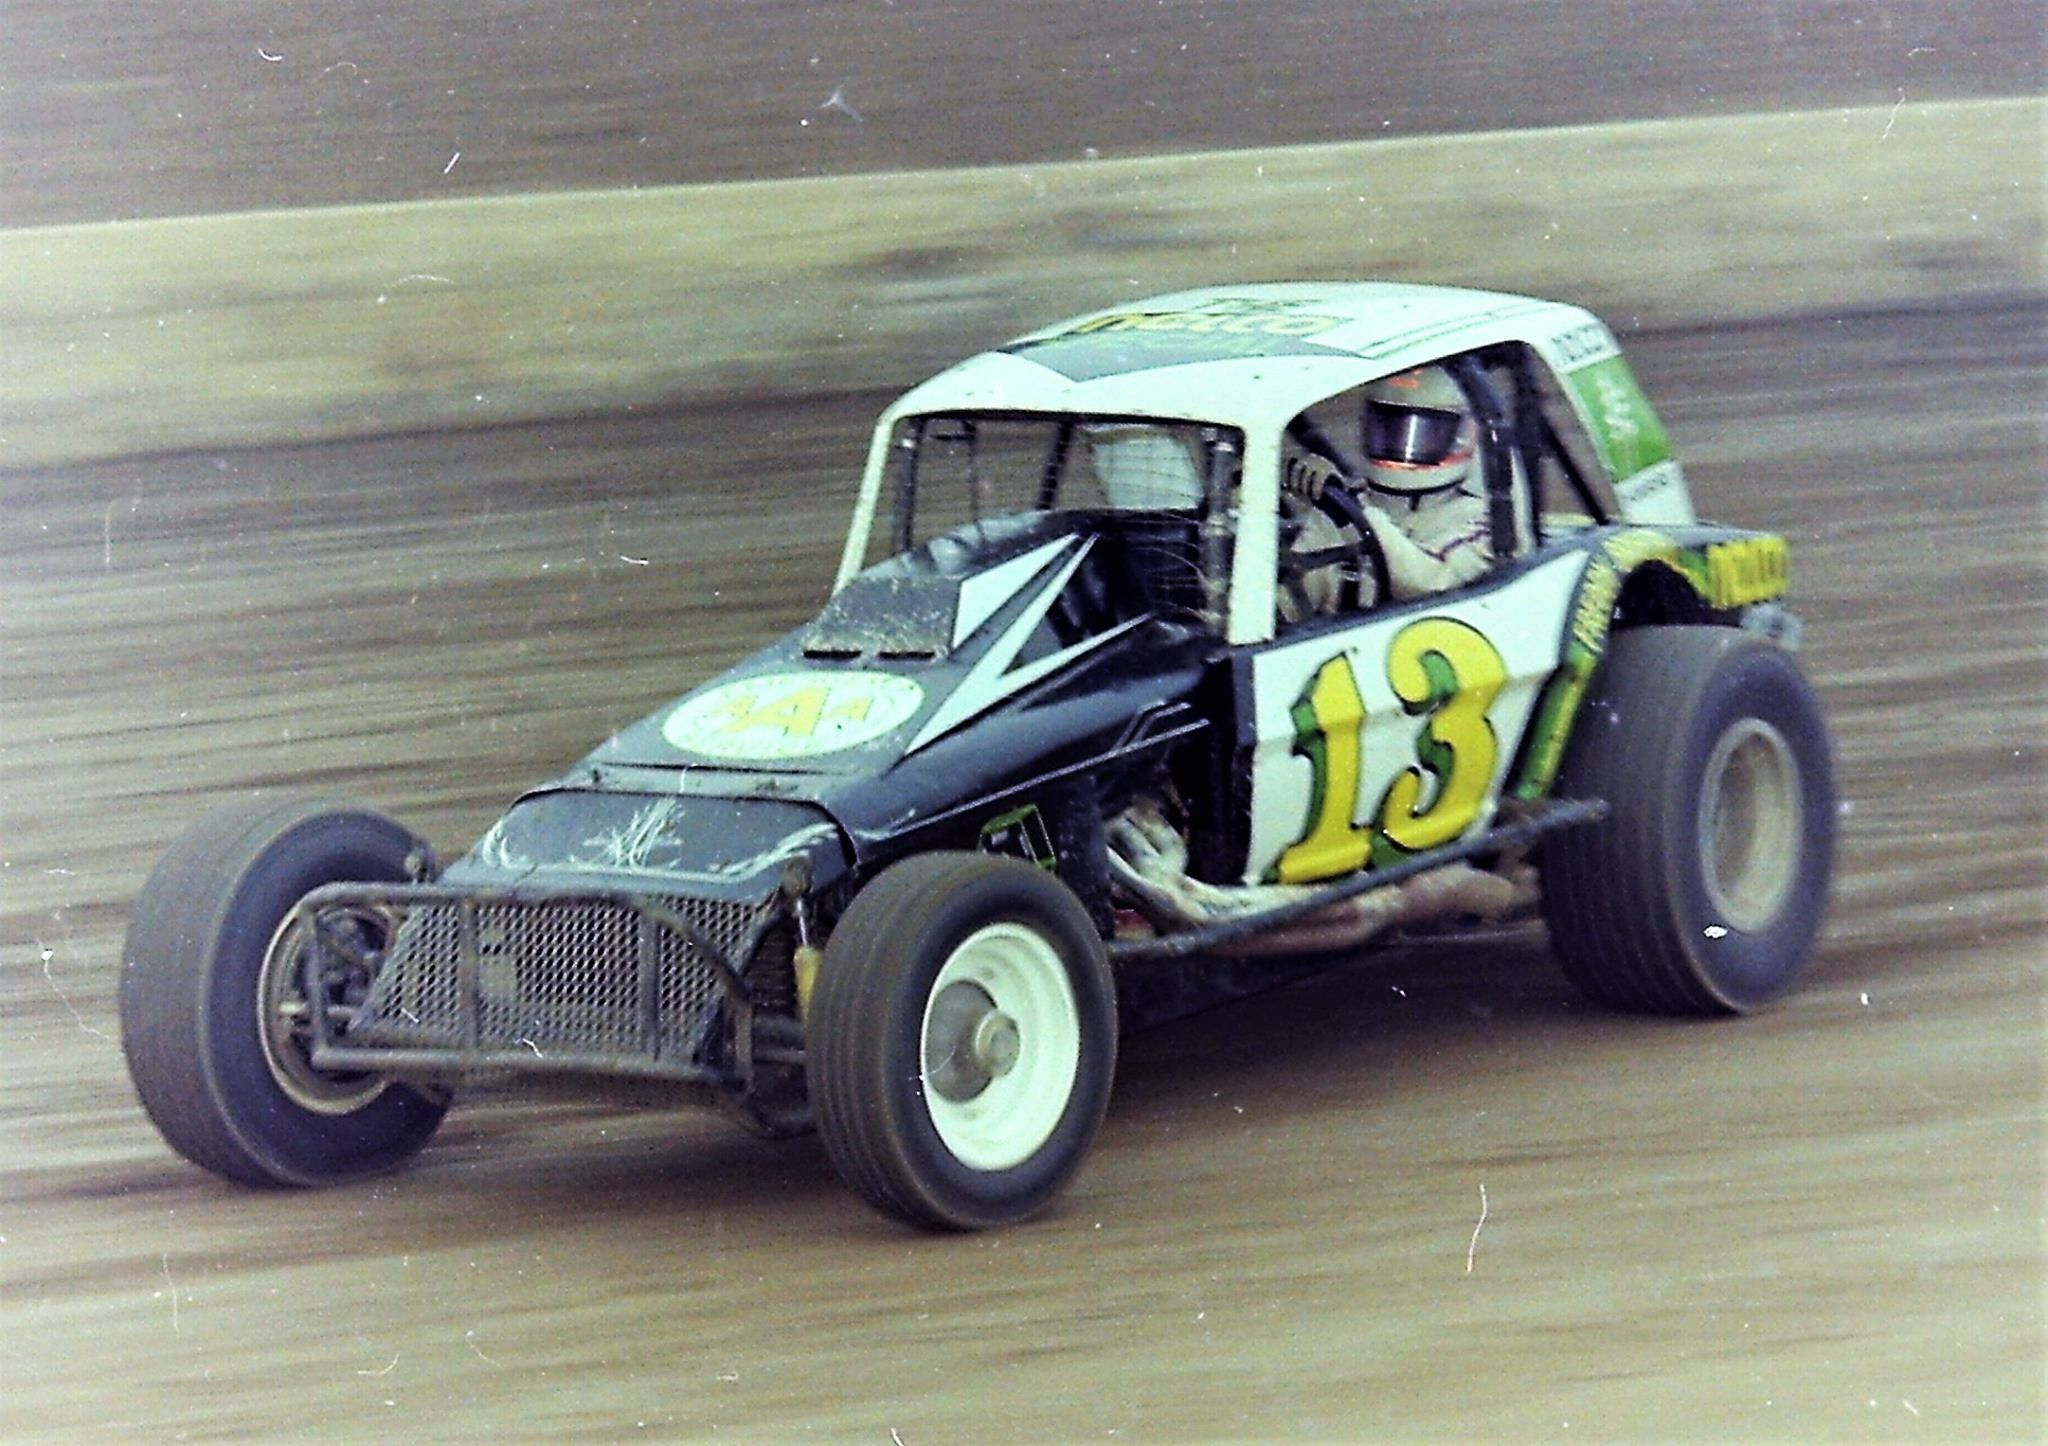 Pin by Jeff Swartz on Racing | Pinterest | Dirt track and Cars